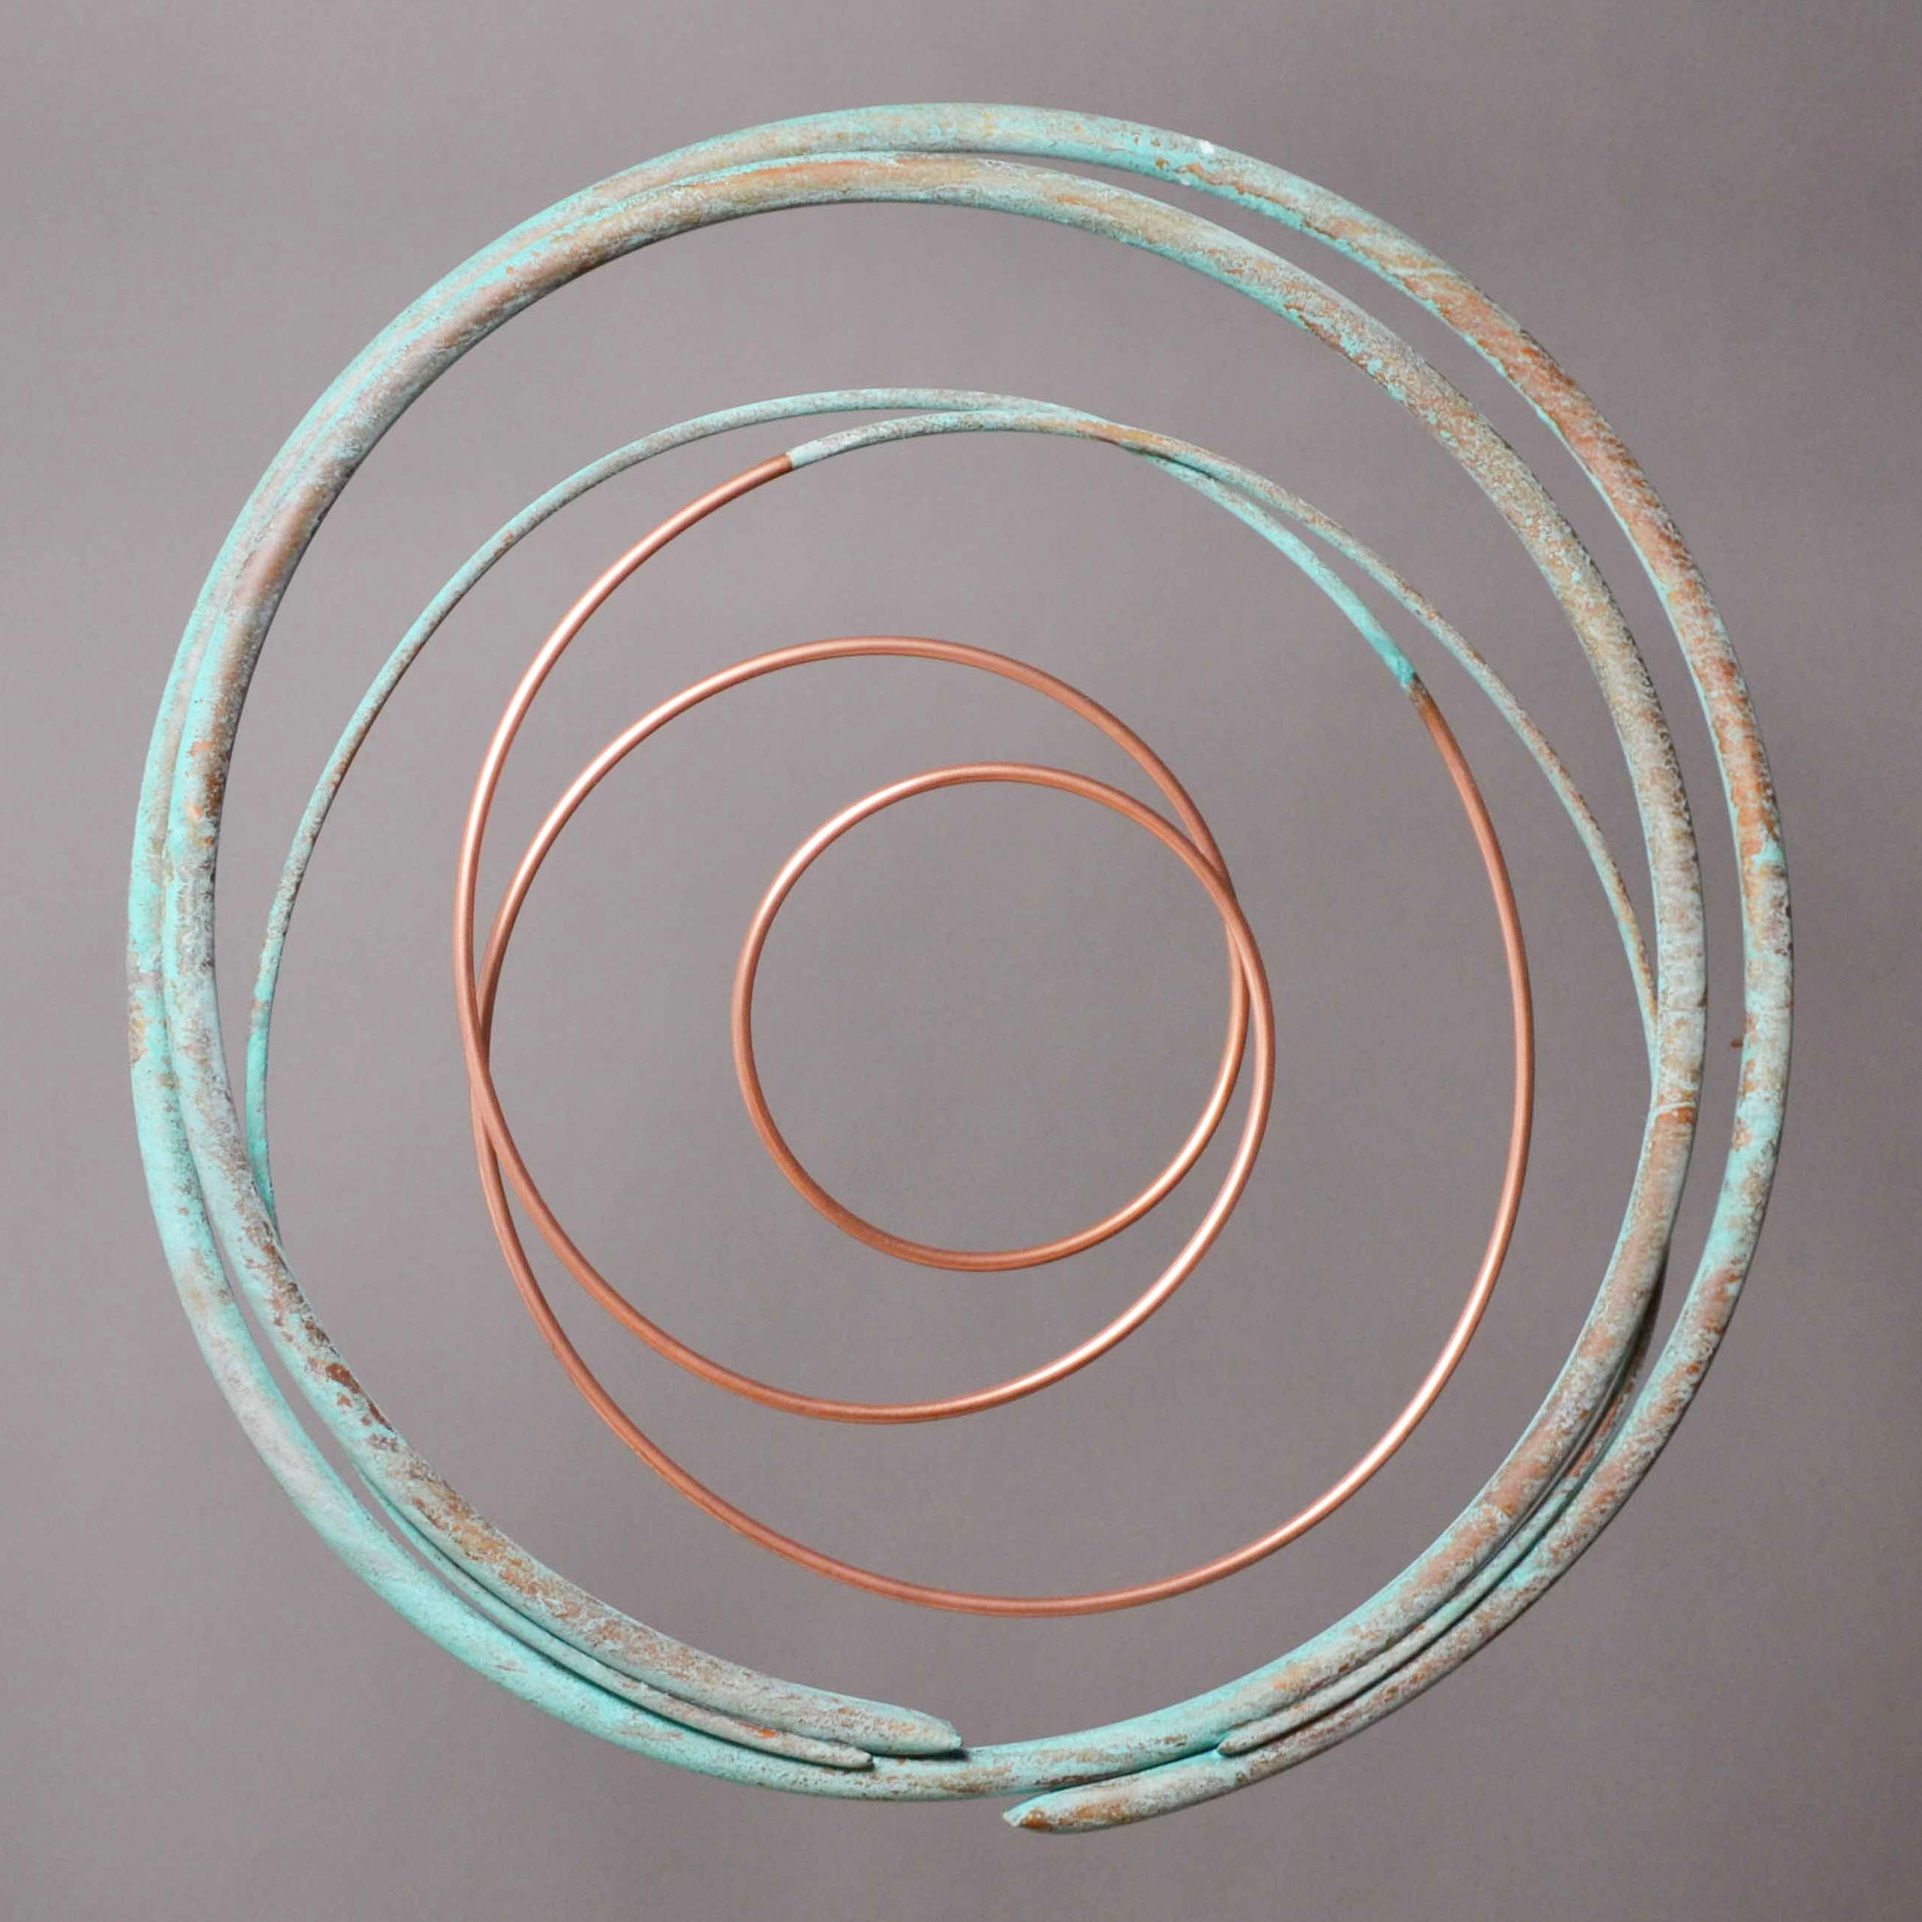 Copper in Verdigris